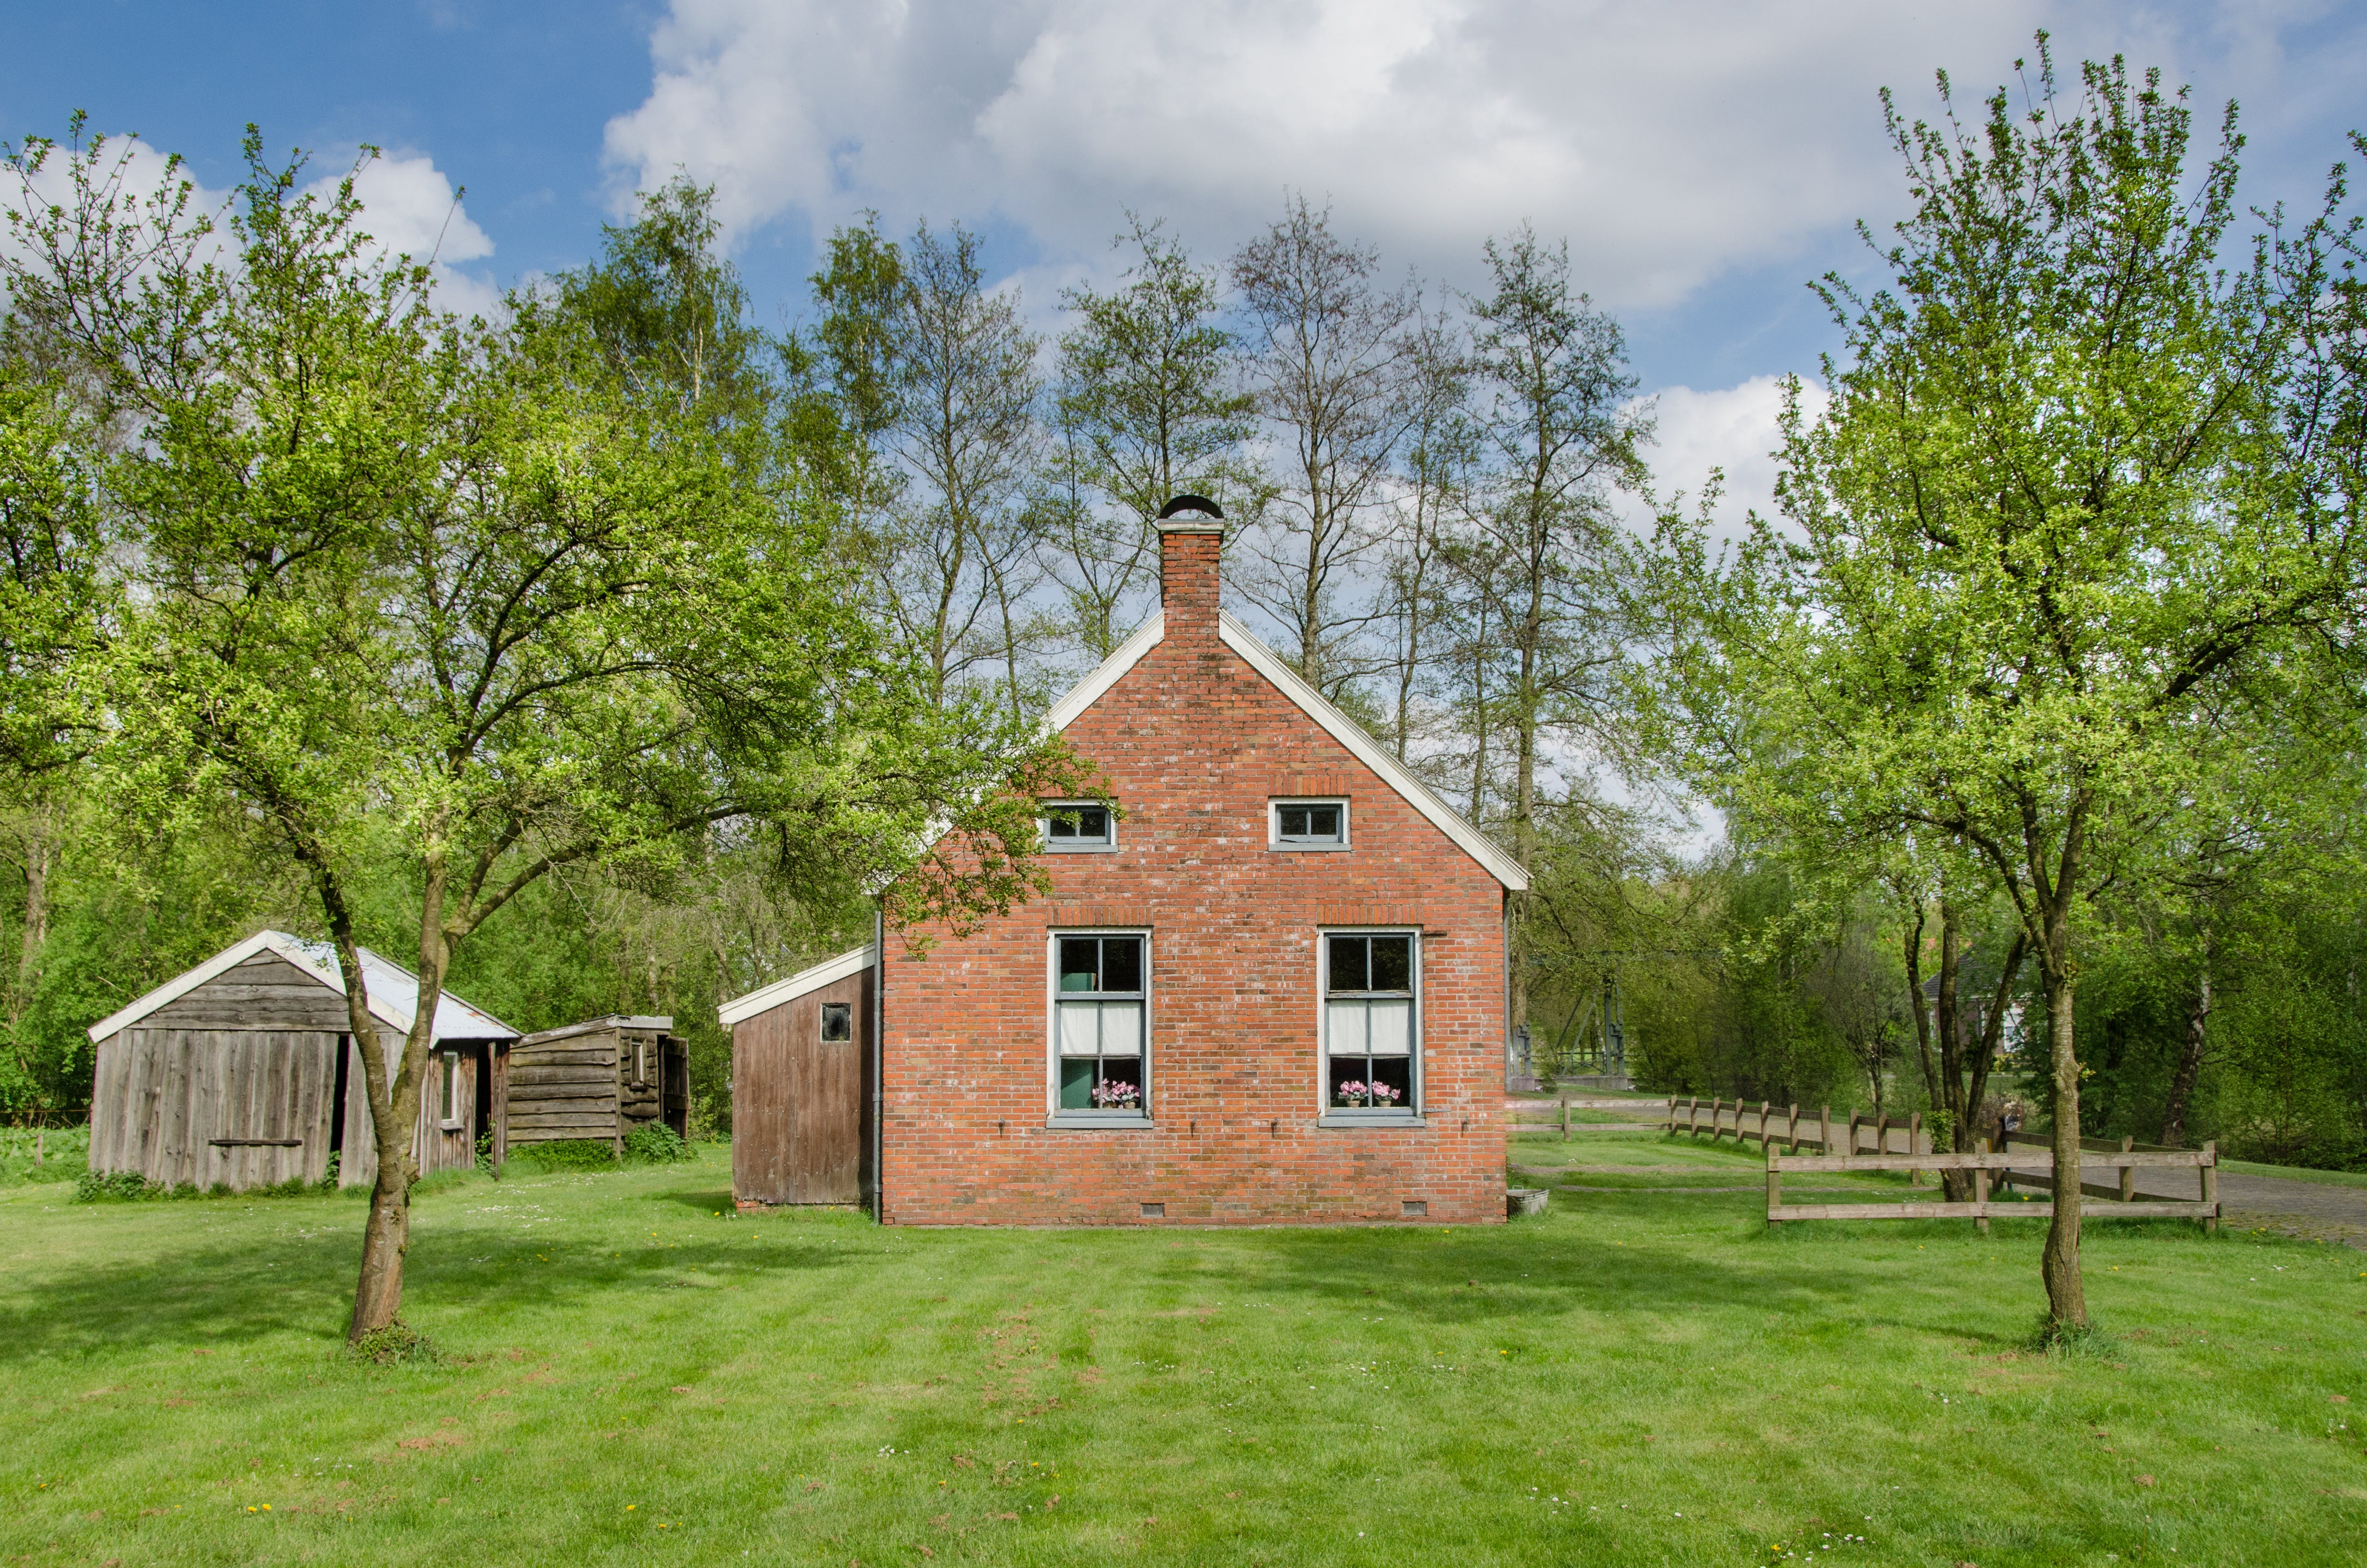 Brown Brick House Surrounded by Green Trees and Grass